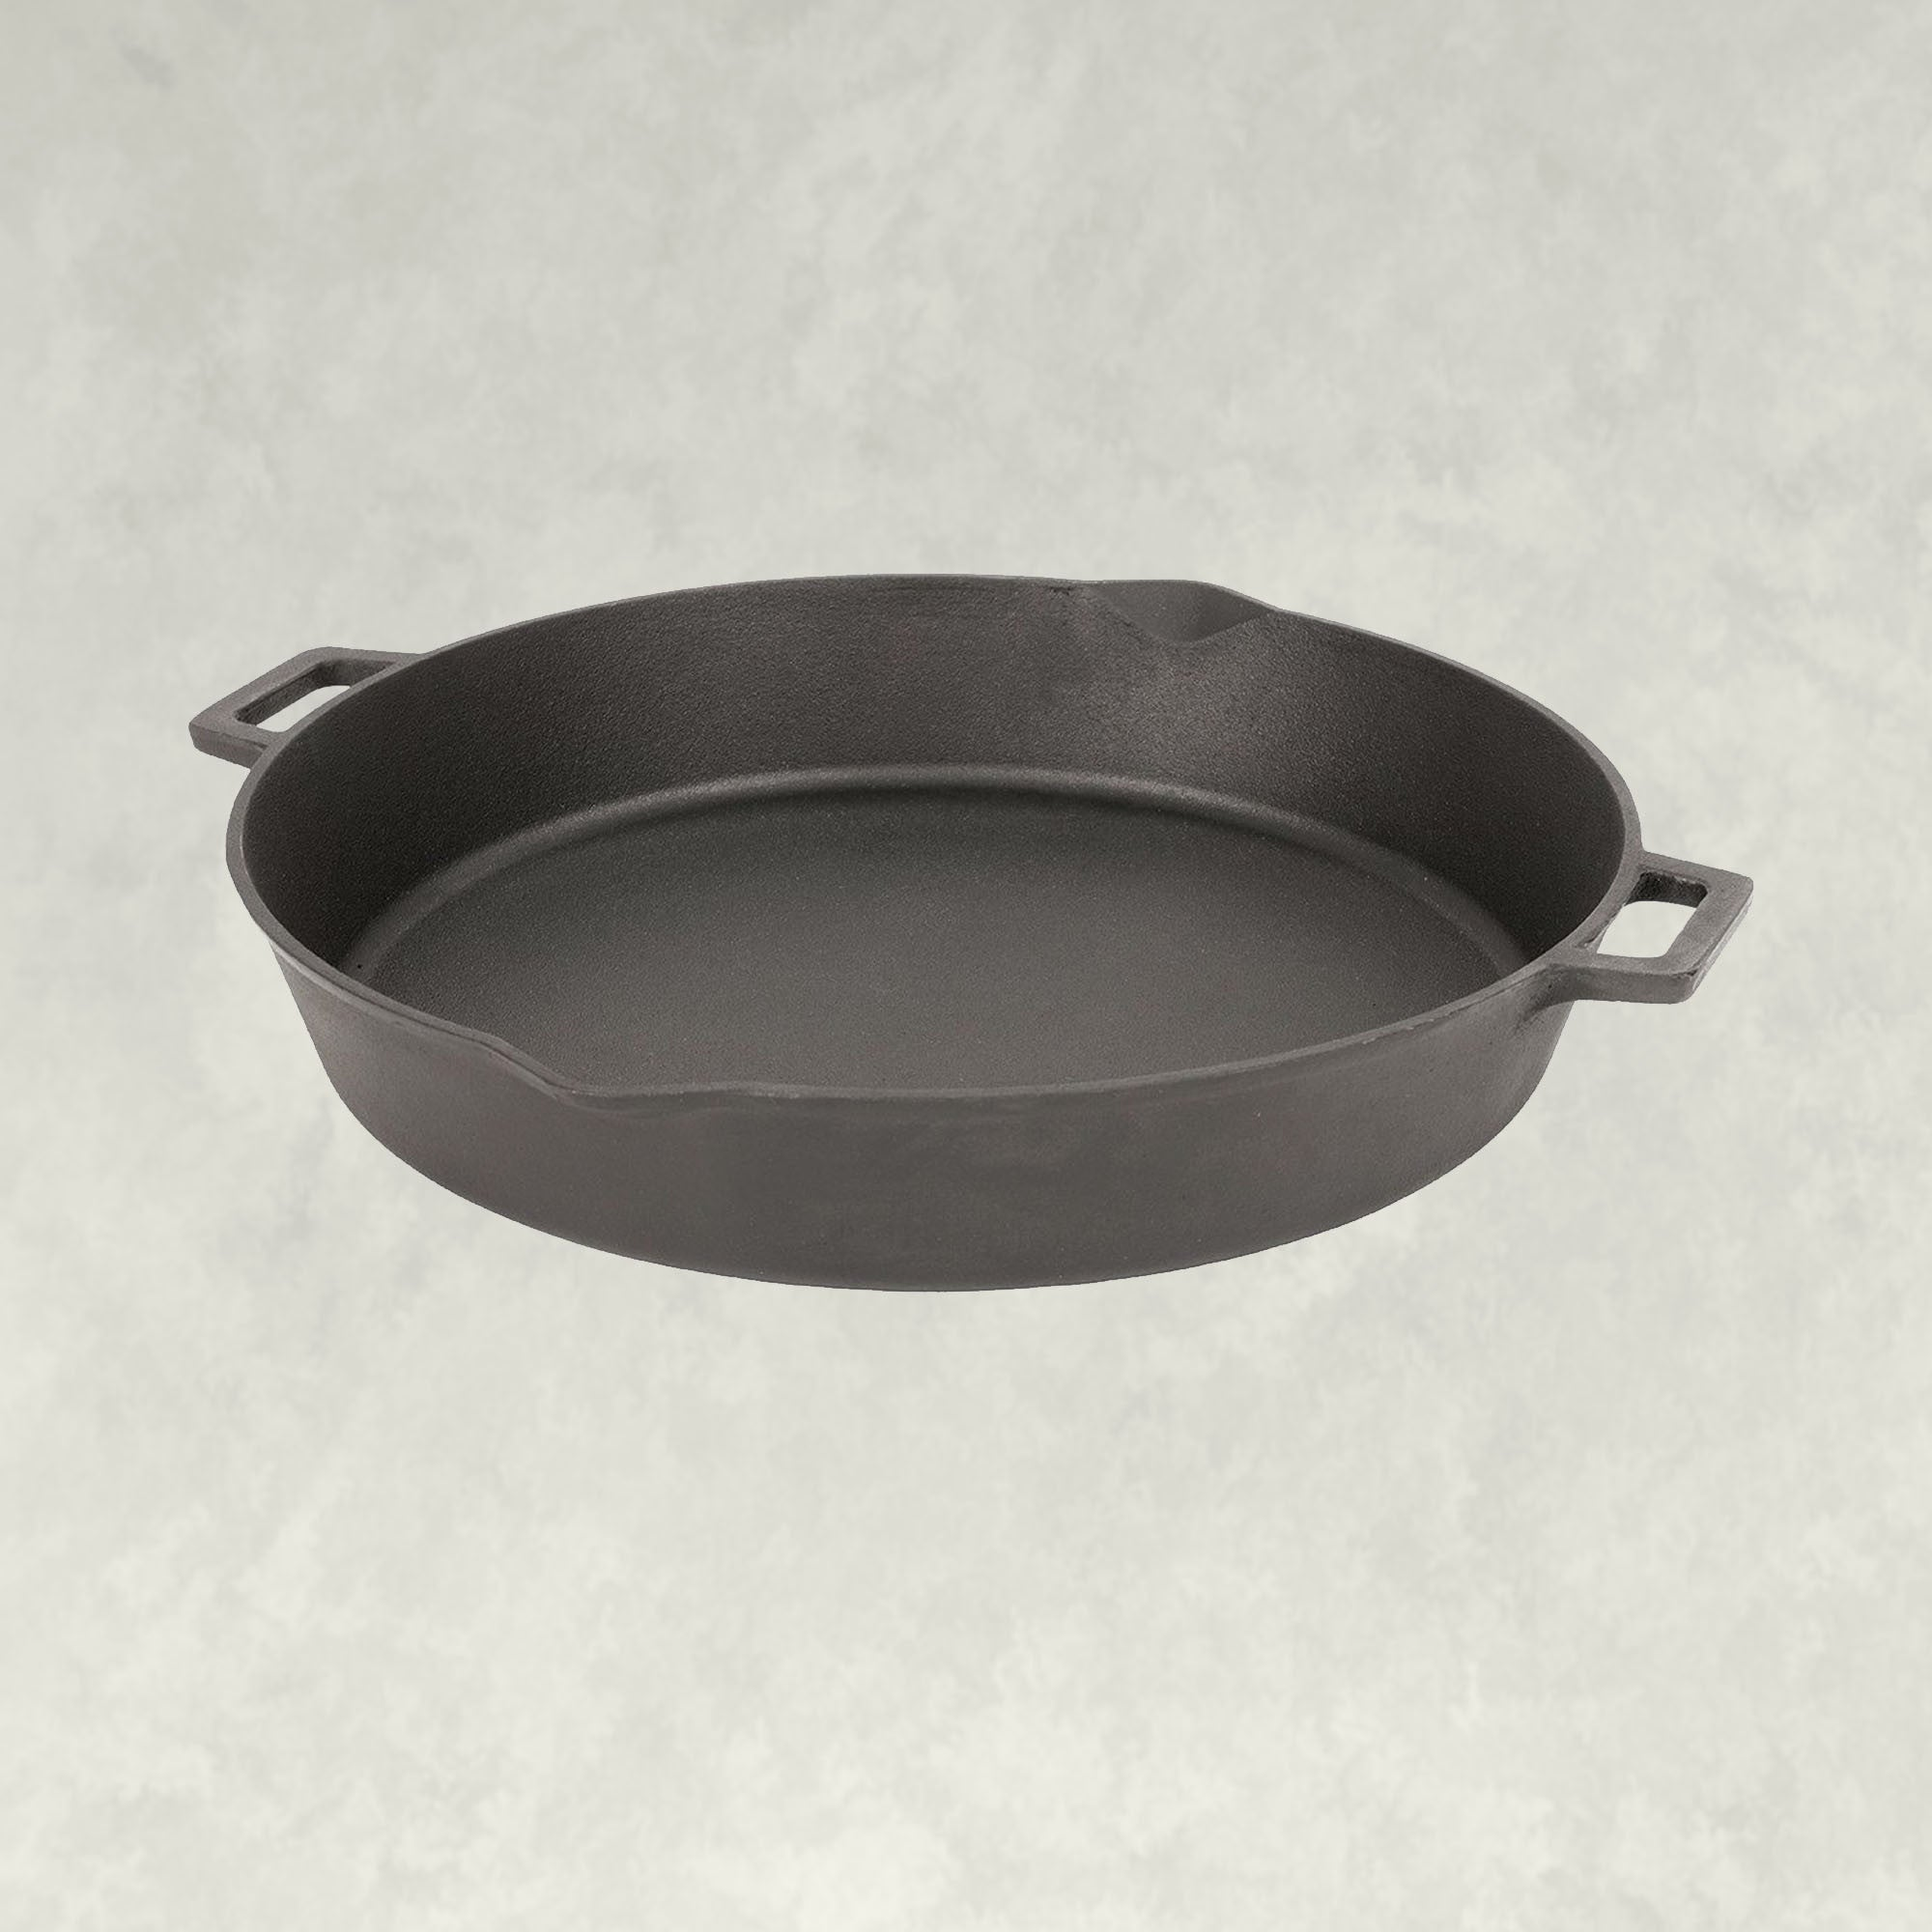 16-in Cast Iron Double-Handled Skillet with/Pour Spouts